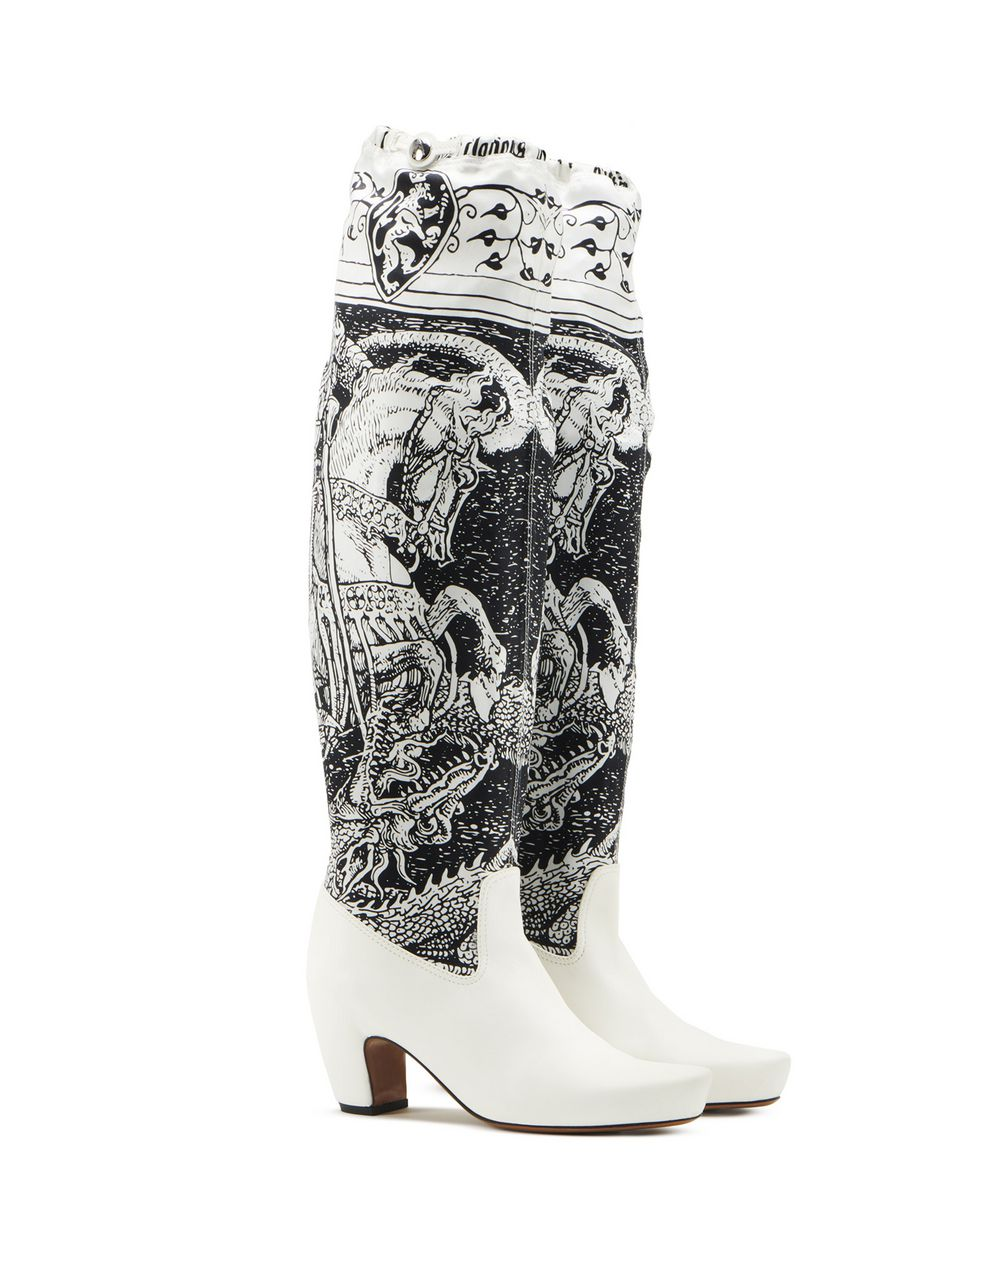 TALL BOOTS IN PRINTED LEATHER AND SILK - Lanvin